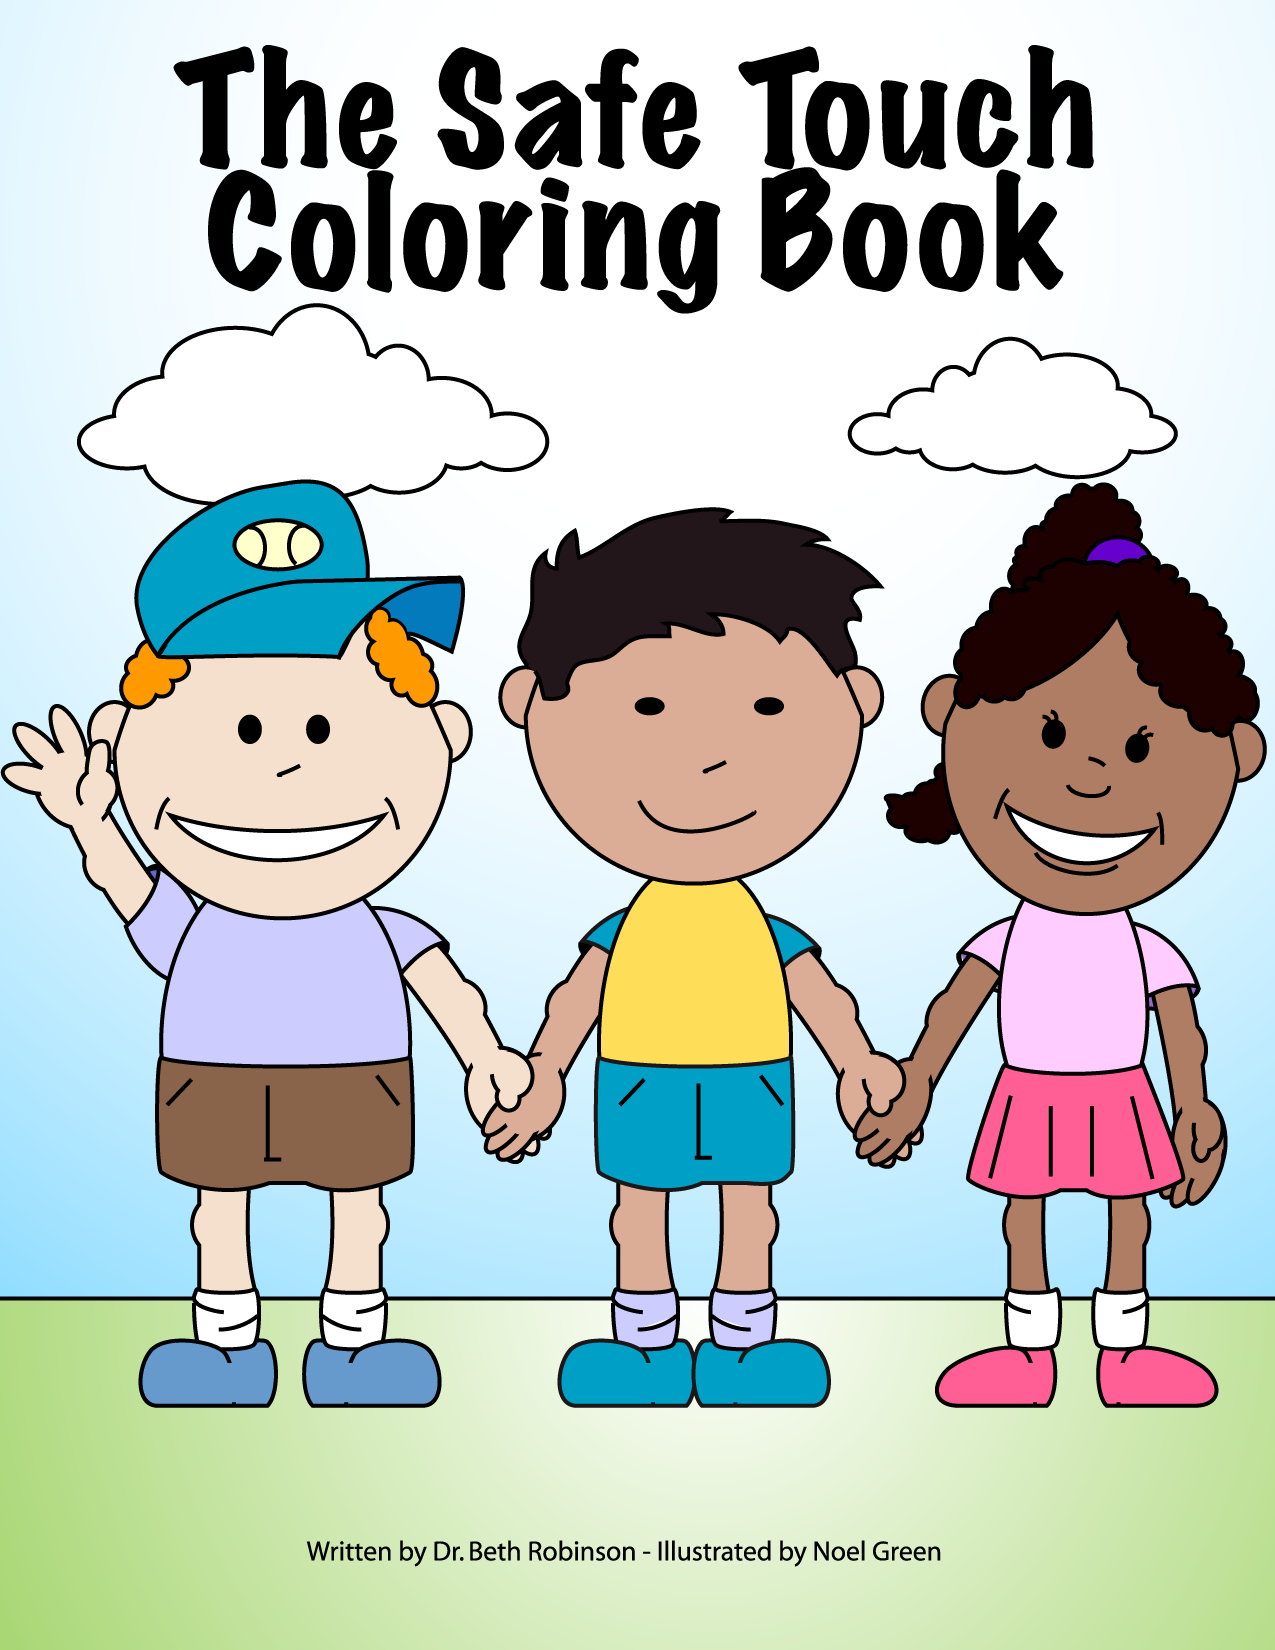 worksheet Safe Touching For Children Worksheets the safe touch coloring book provides an easy way for adults to teach children how to